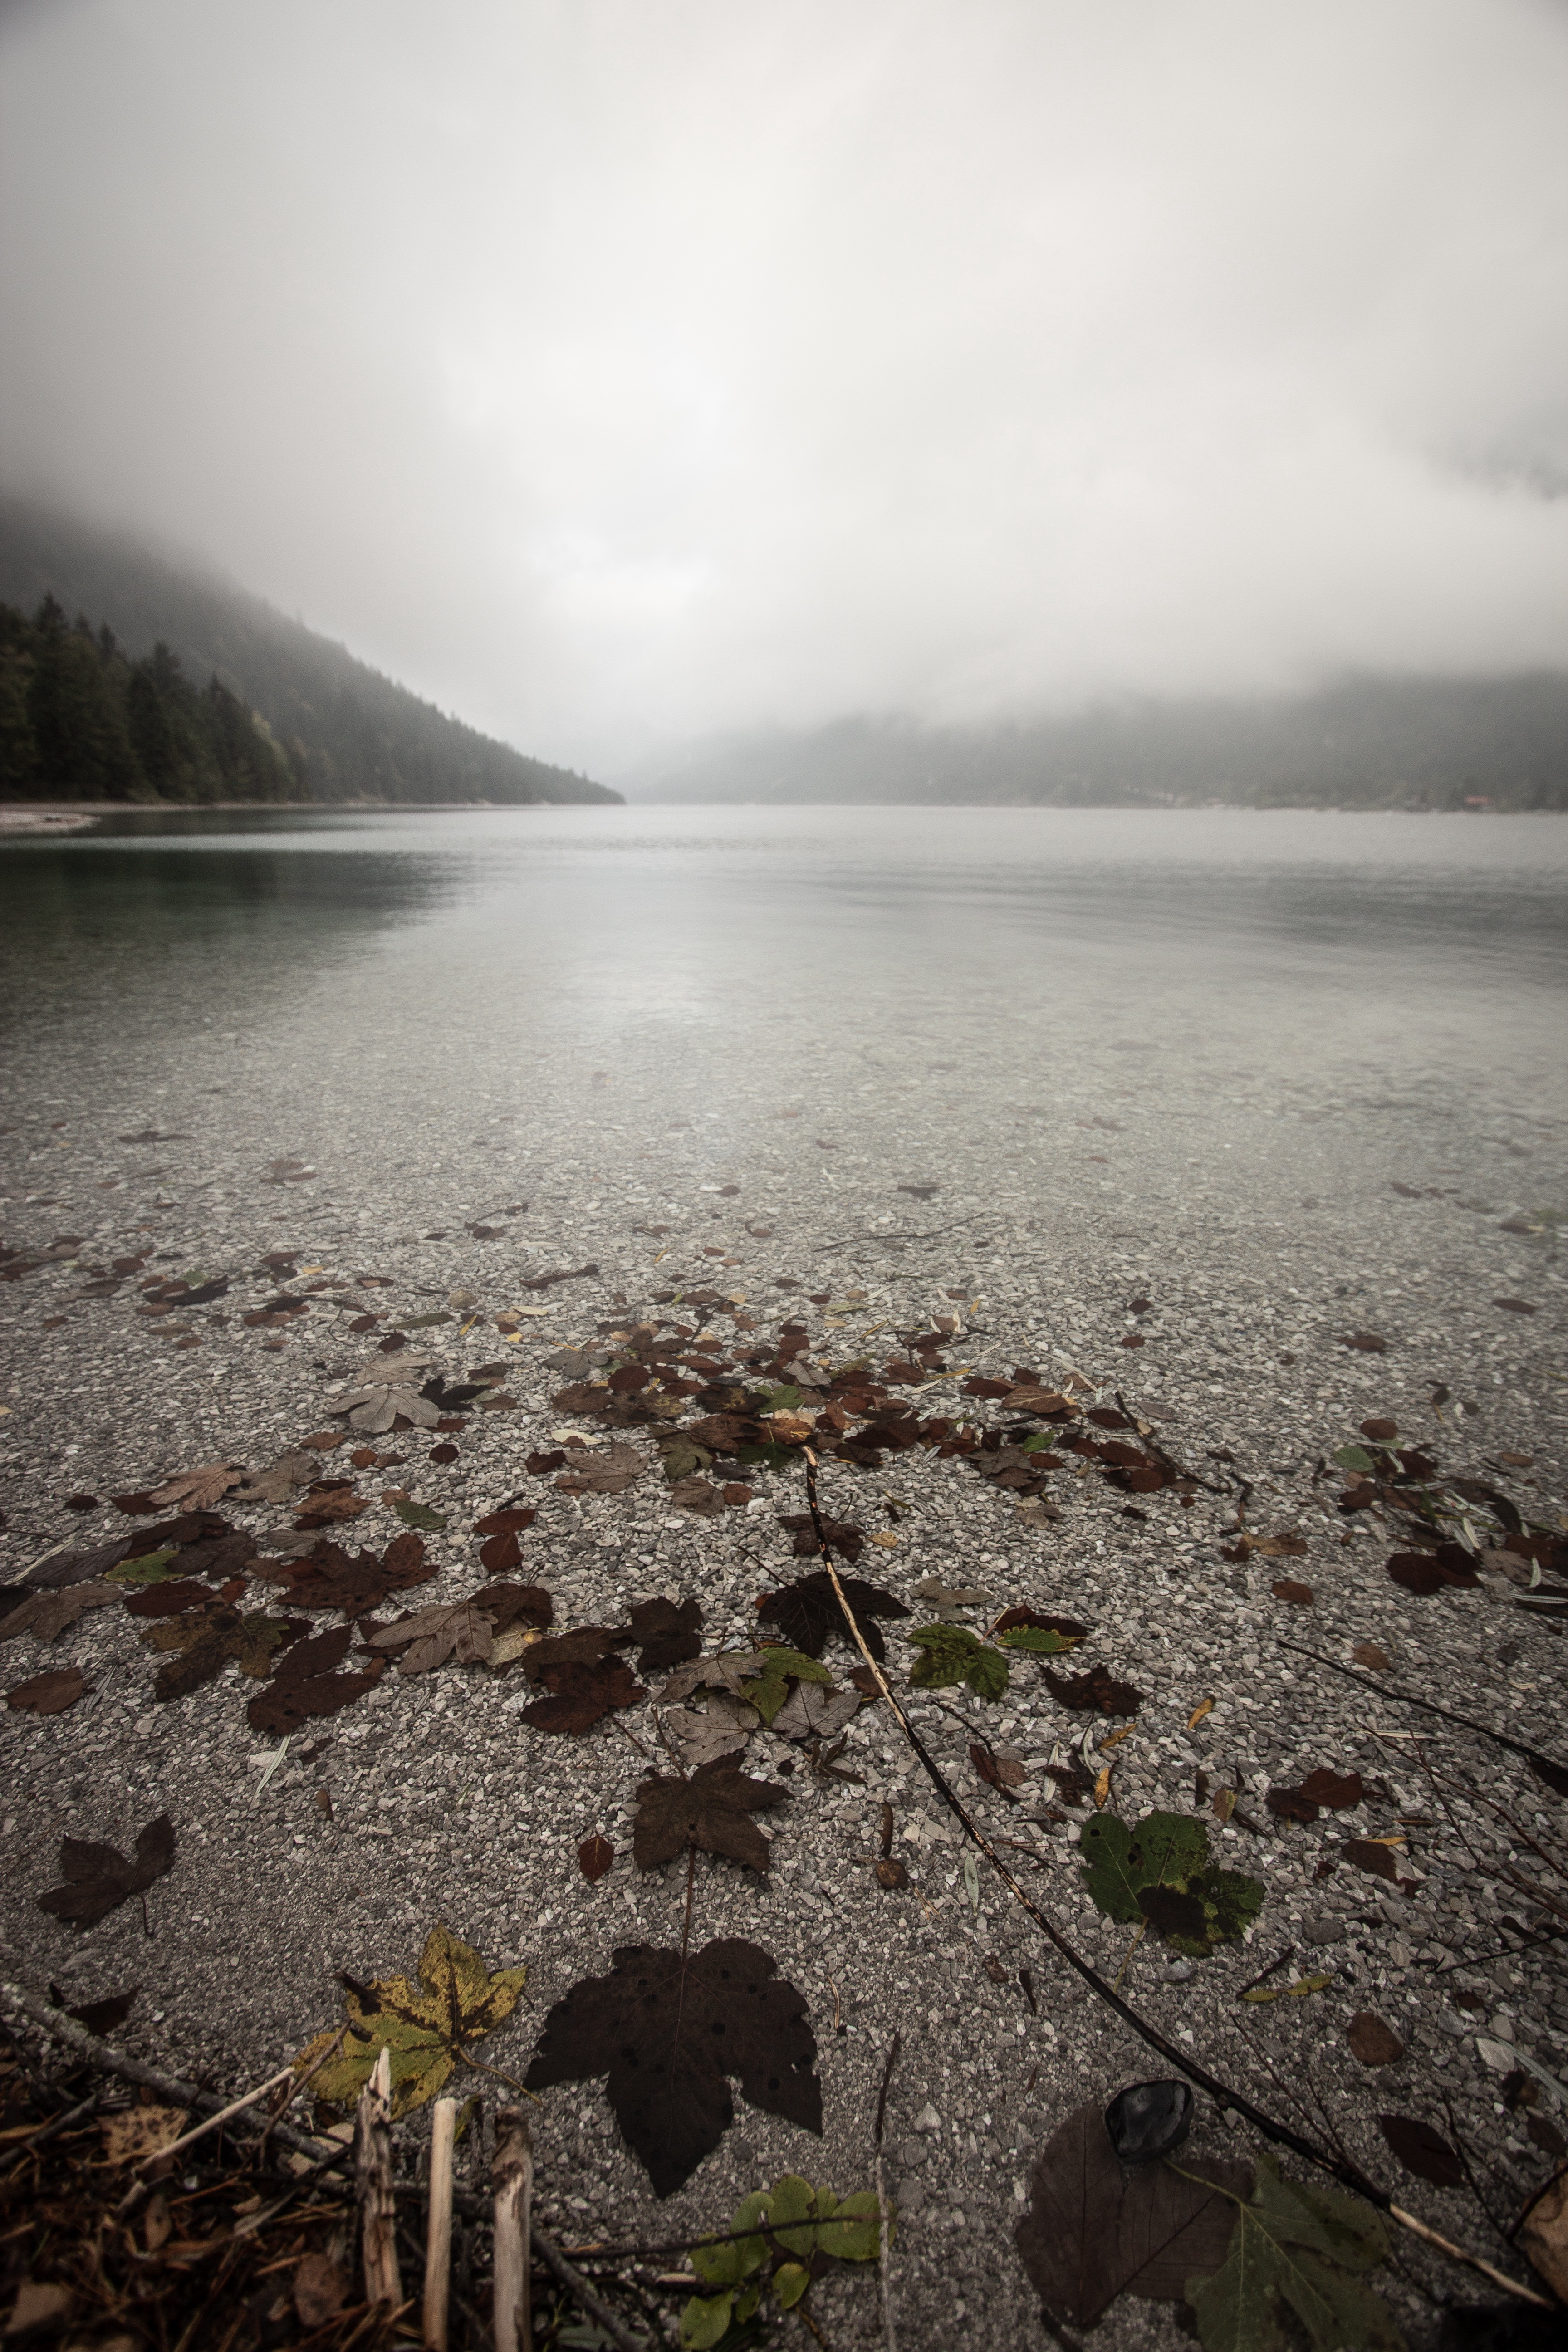 Gray fog over a body of water with fallen leaves in it